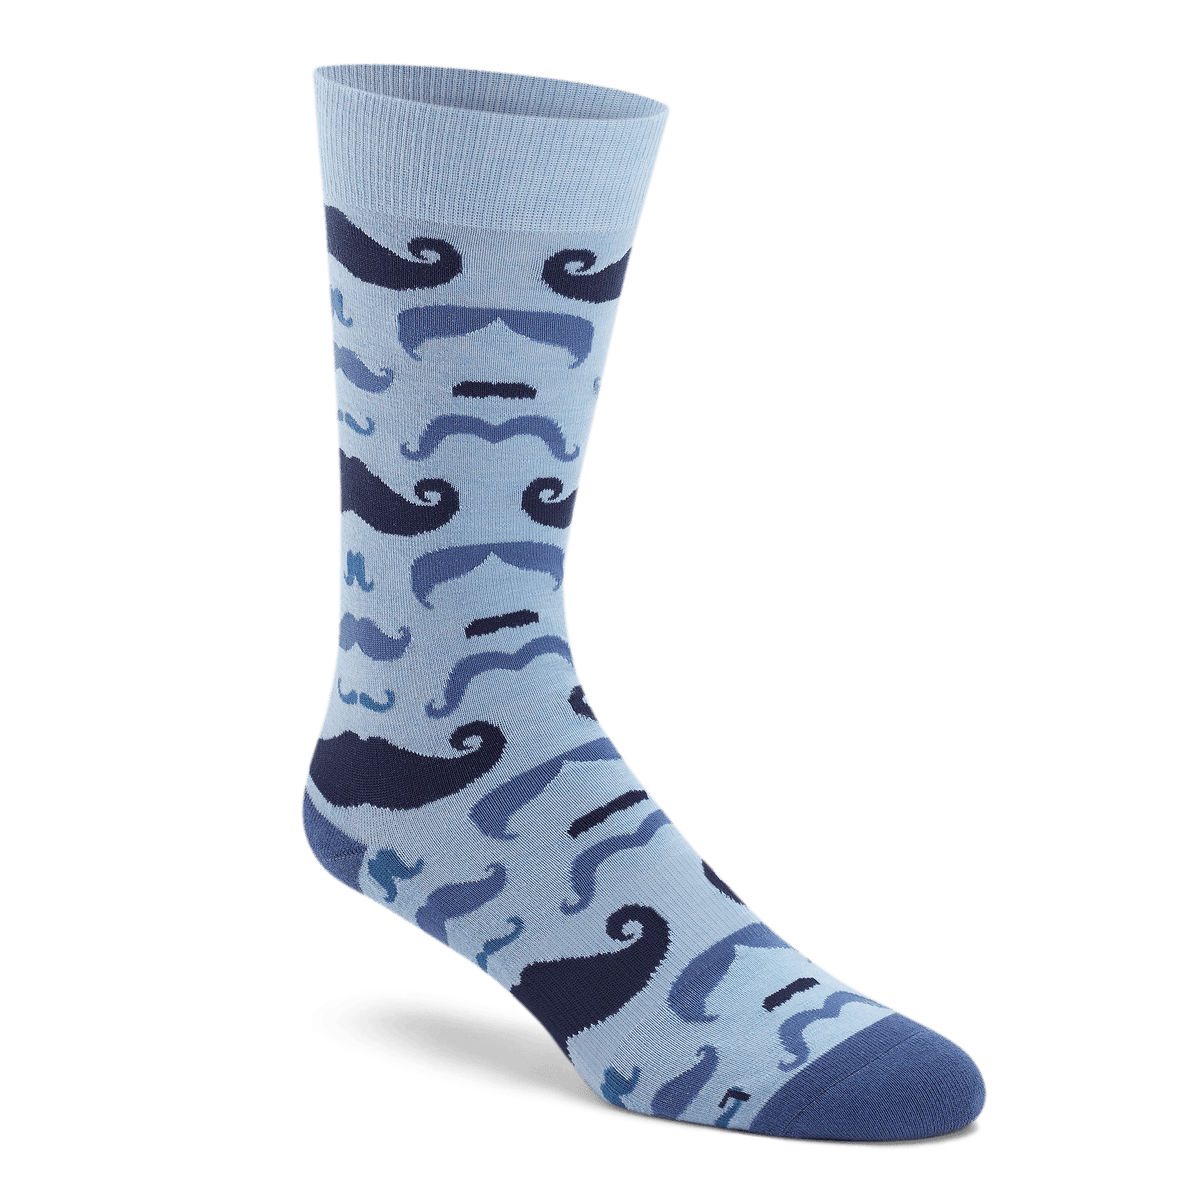 Sock Prostate Cancer